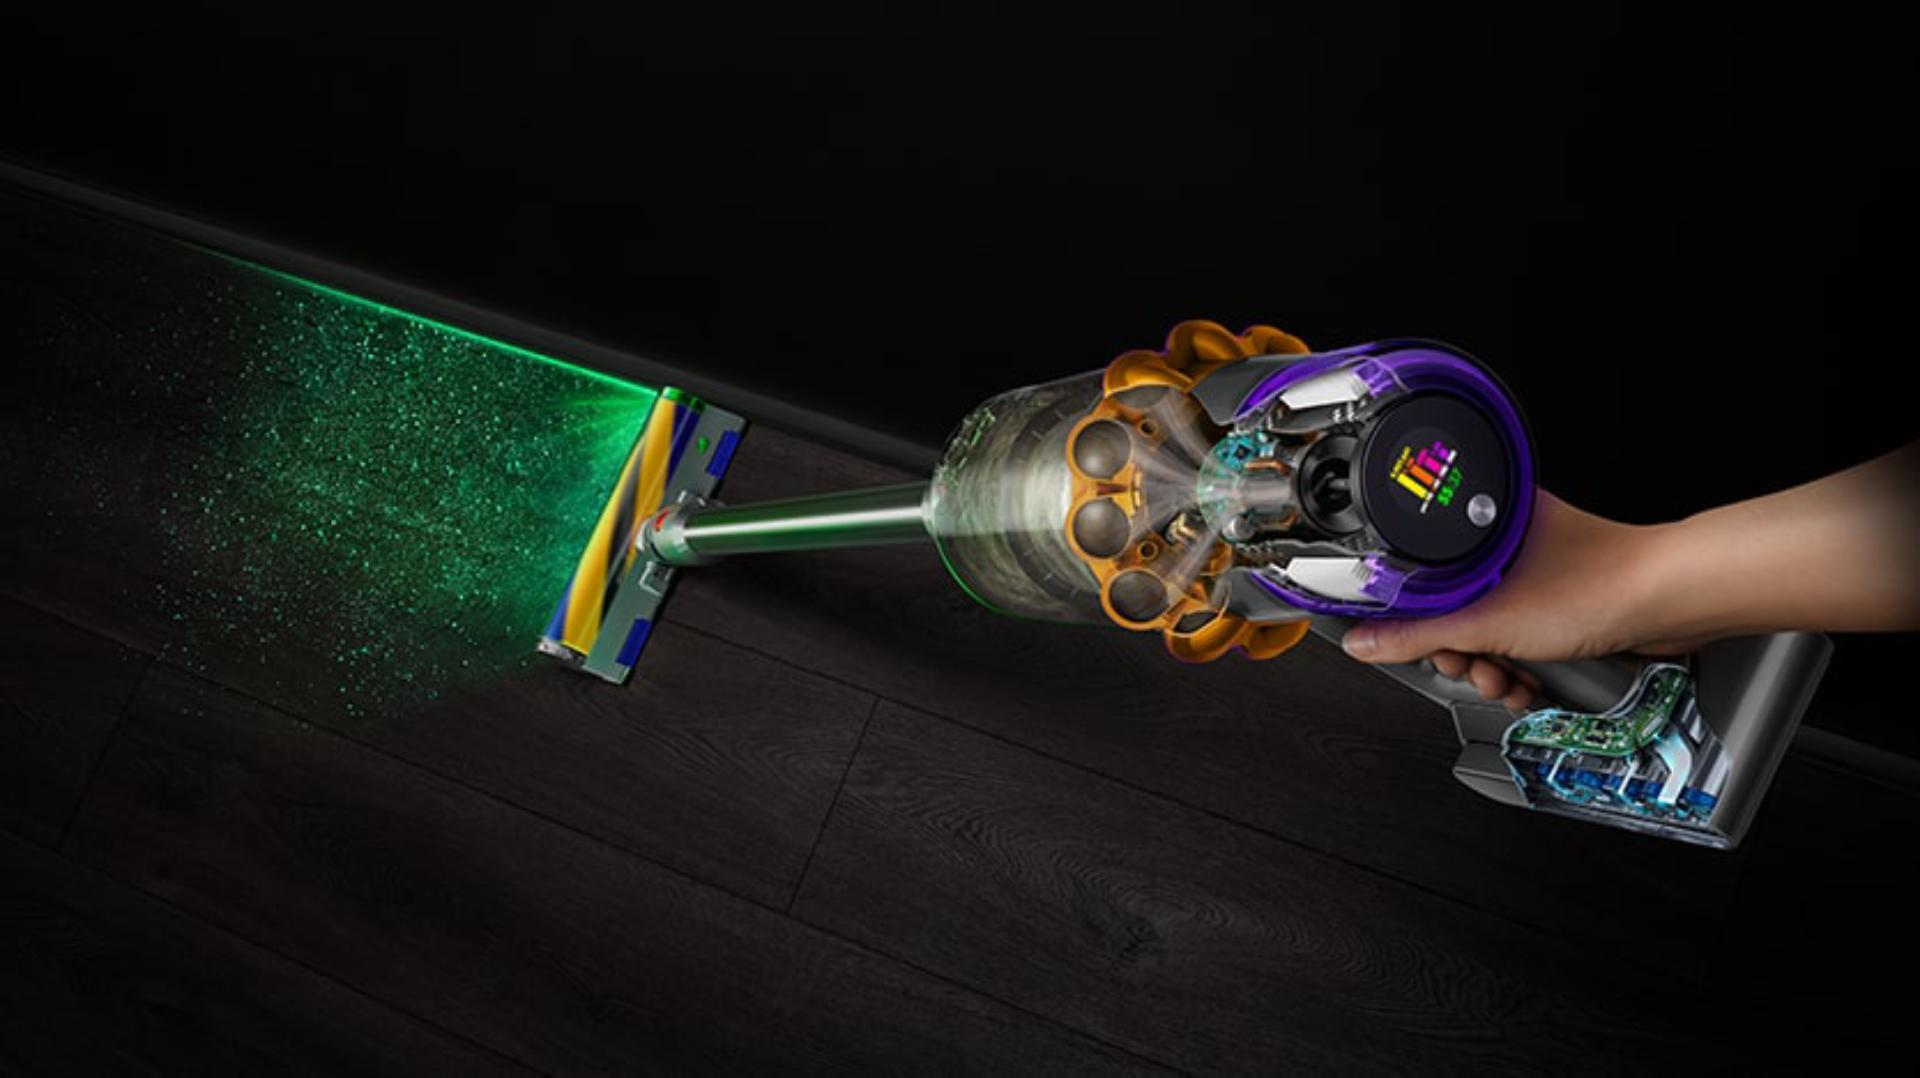 Aerial view of Dyson V15 vacuum showing the LCD screen